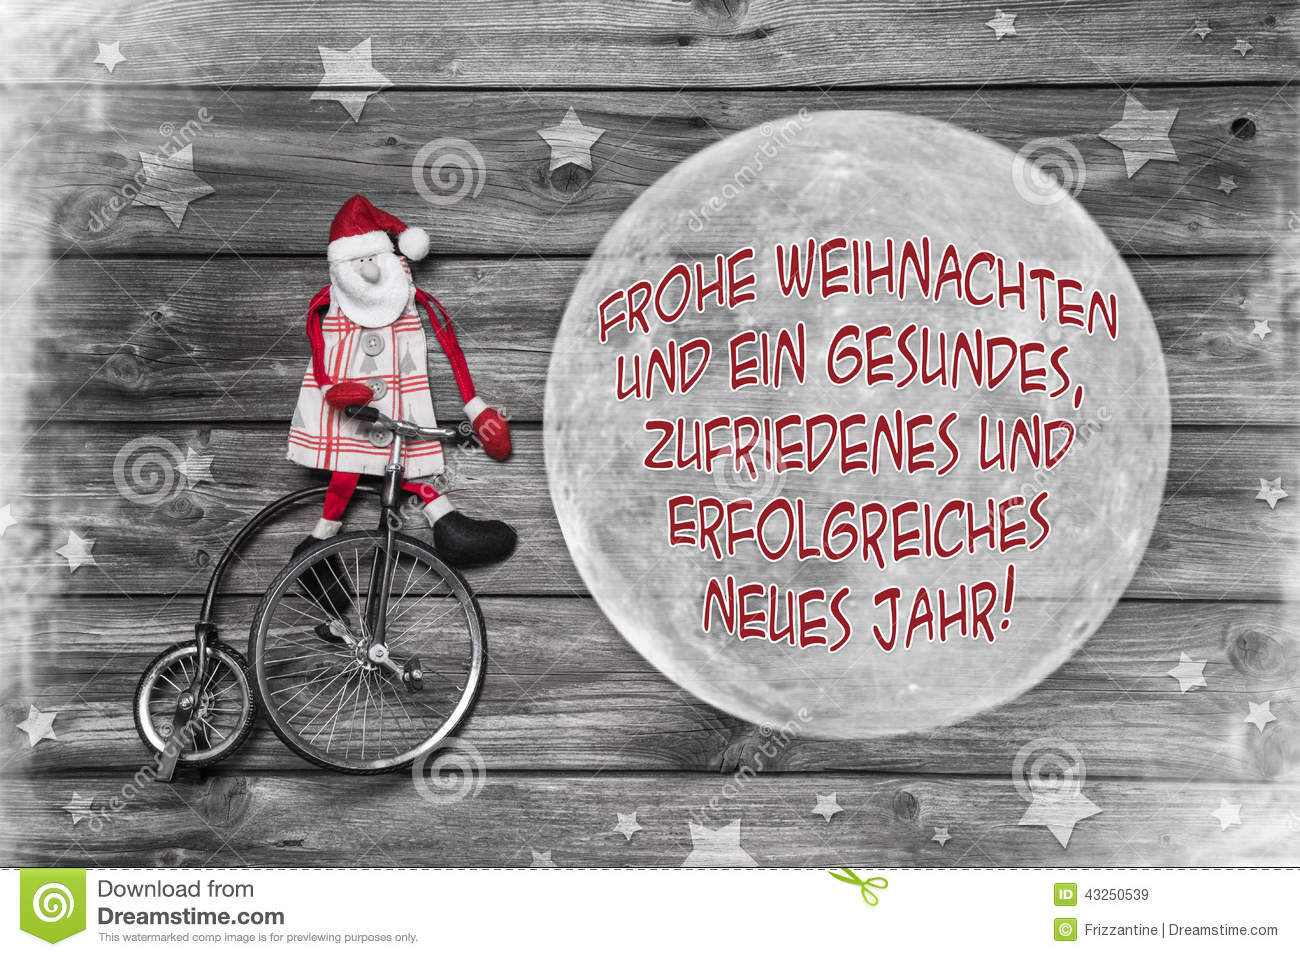 Awesome merry christmas wishes messages and wallpapers in german awesome merry christmas wishes messages and wallpapers in german m4hsunfo